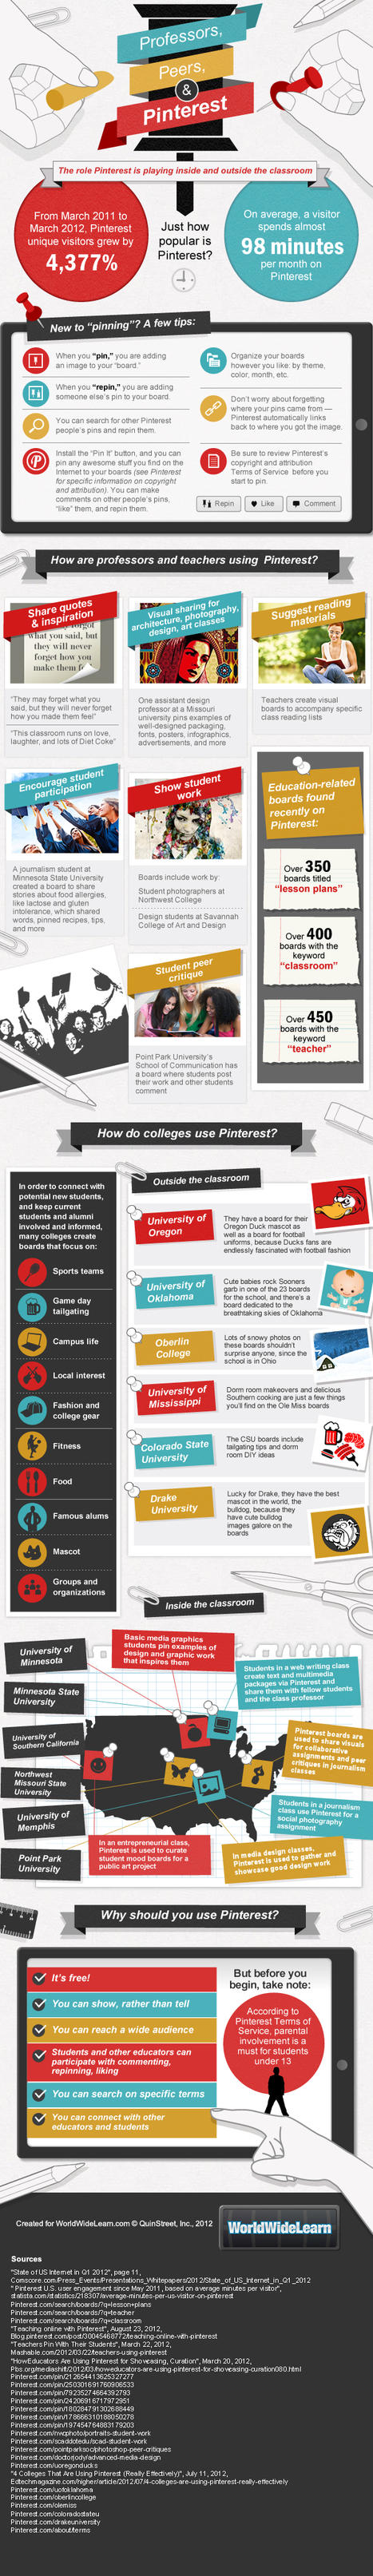 Teachers Manual on The Use of Pinterest in Education ~ Educational Technology and Mobile Learning - Teachers Tech | AAEEBL -- Digital This and That | Scoop.it